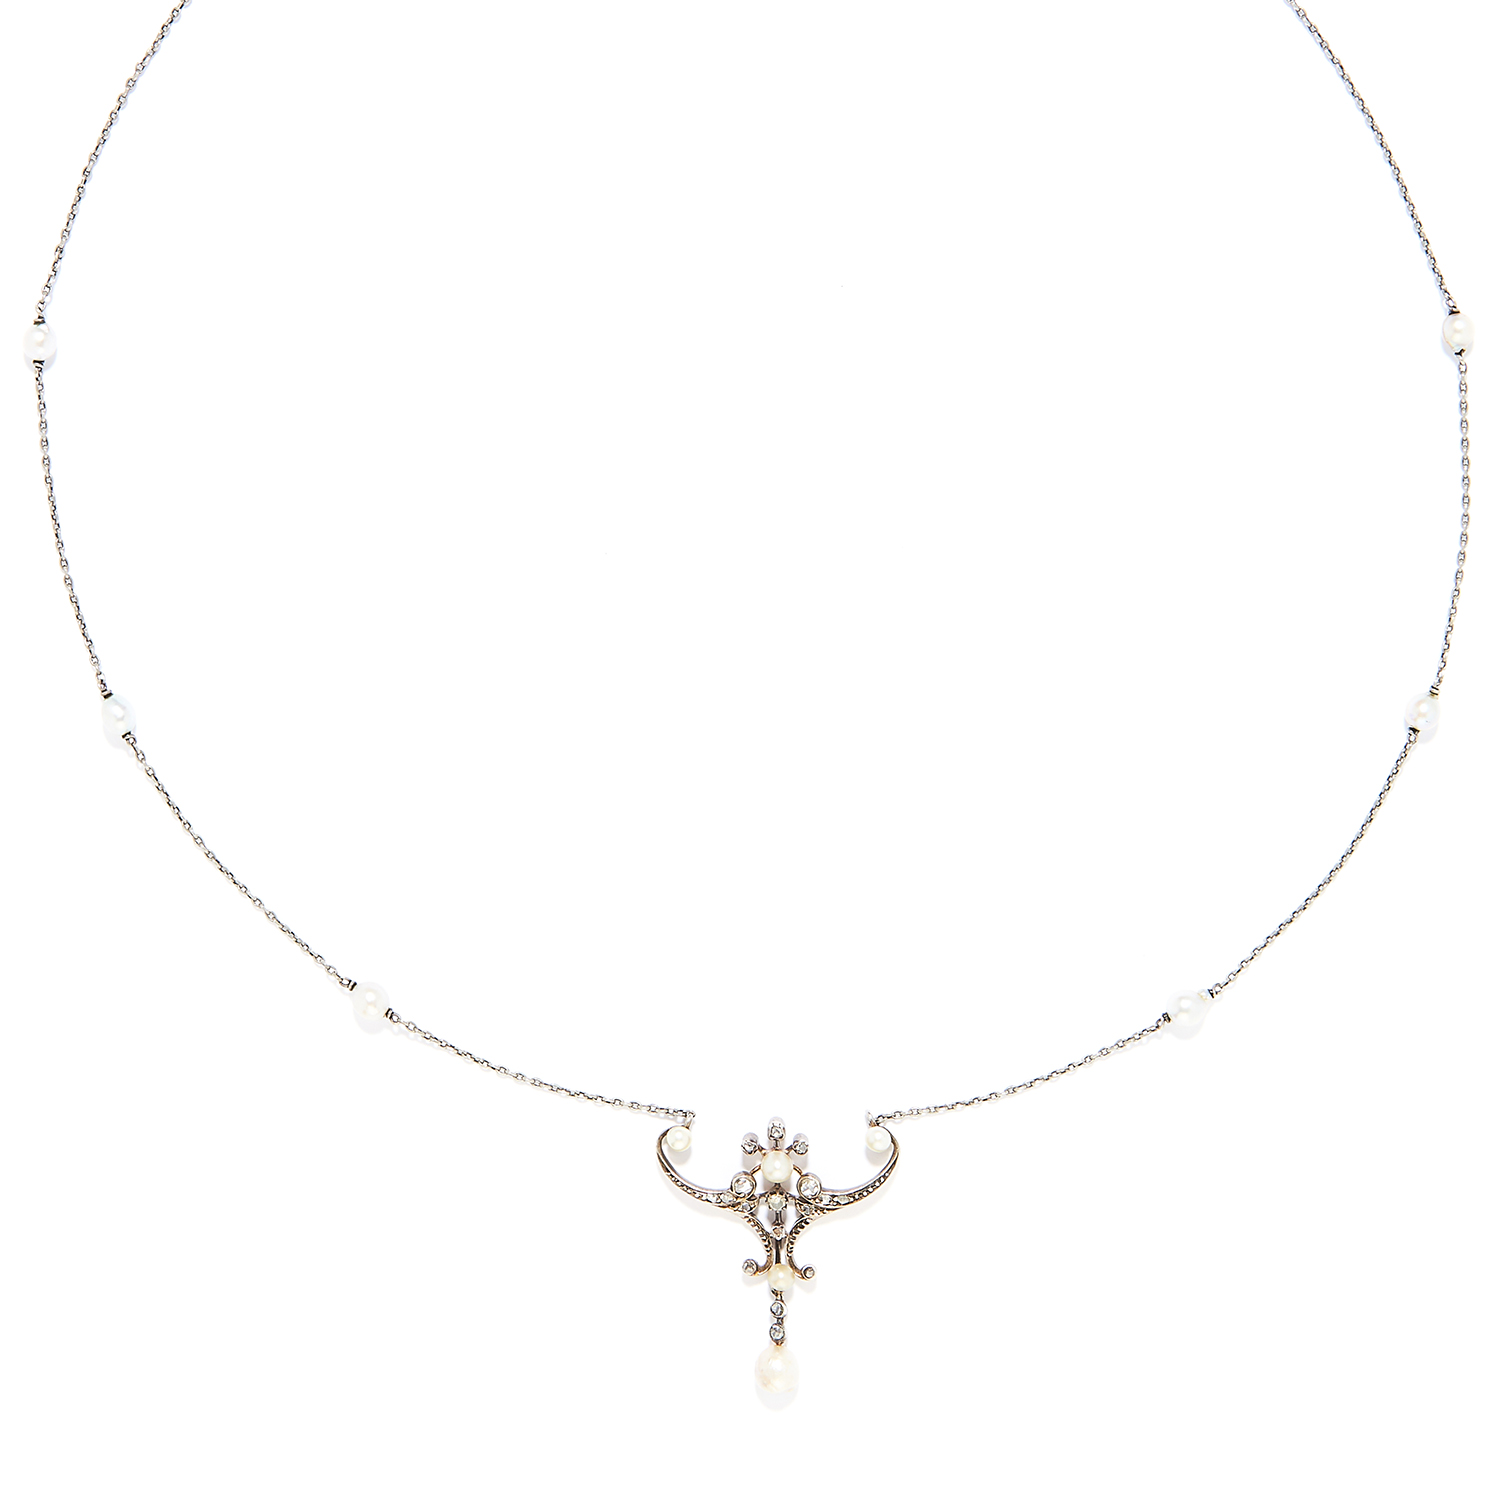 Los 38 - ANTIQUE PEARL AND DIAMOND PENDANT in gold or platinum, comprising of a rose cut diamond and pearl